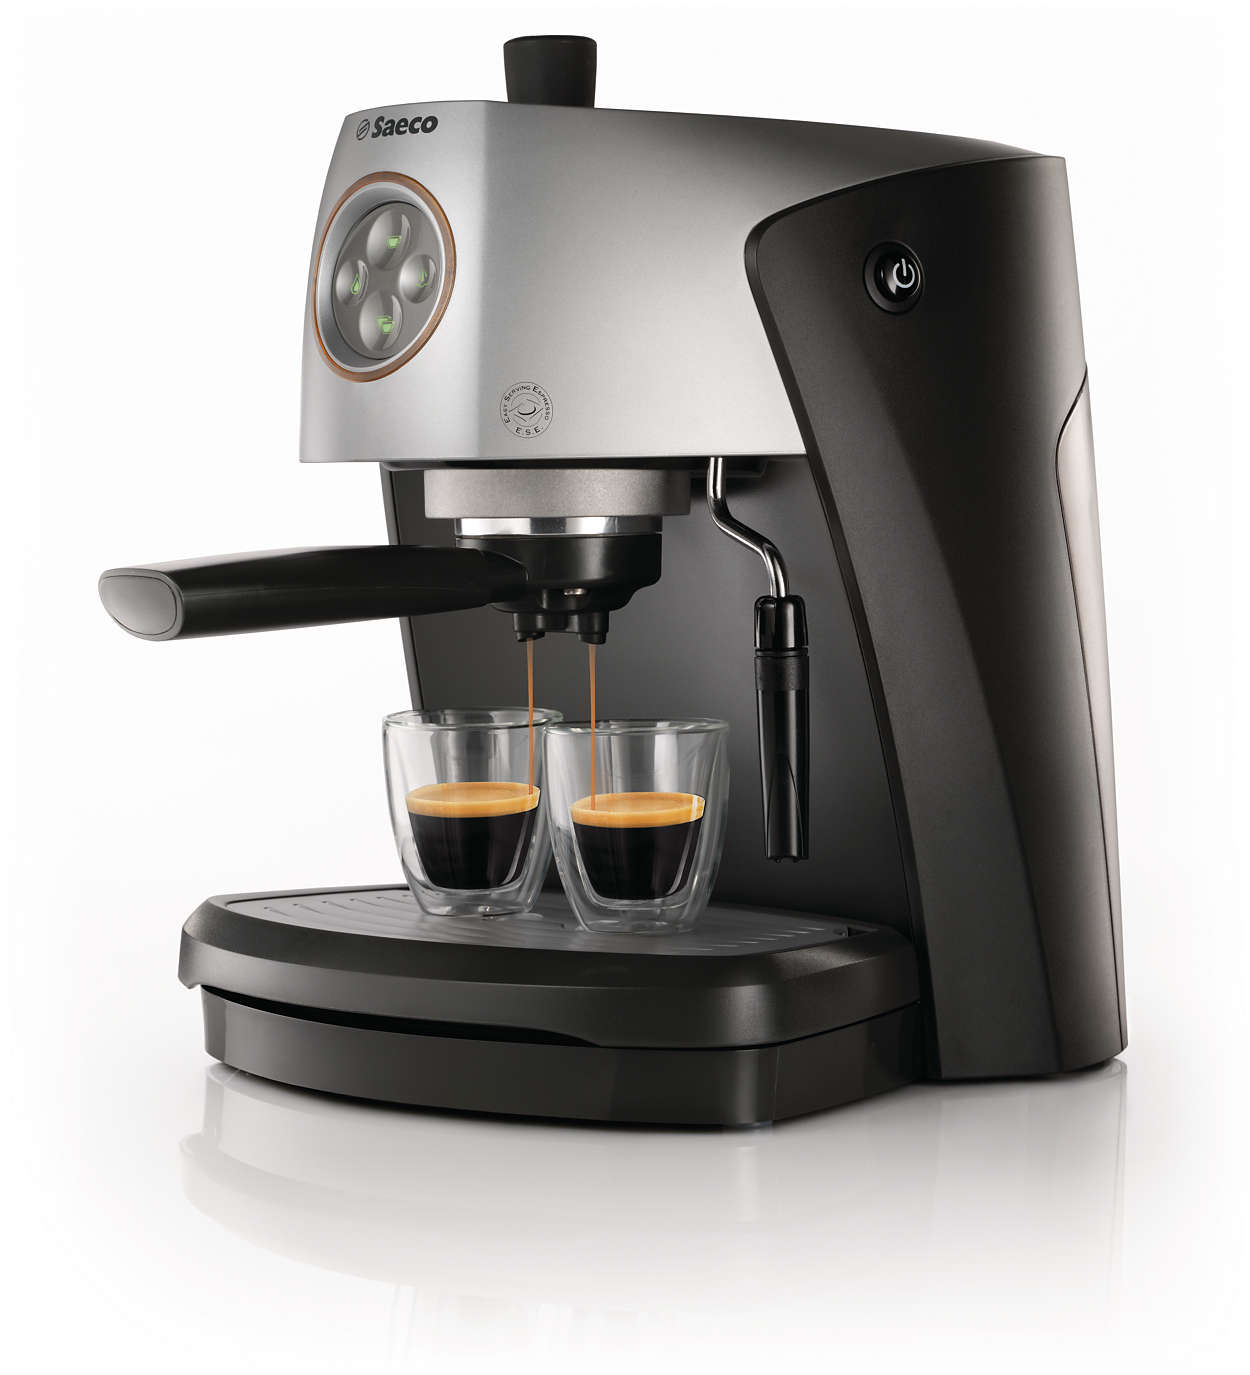 Saeco focus manual espresso machine